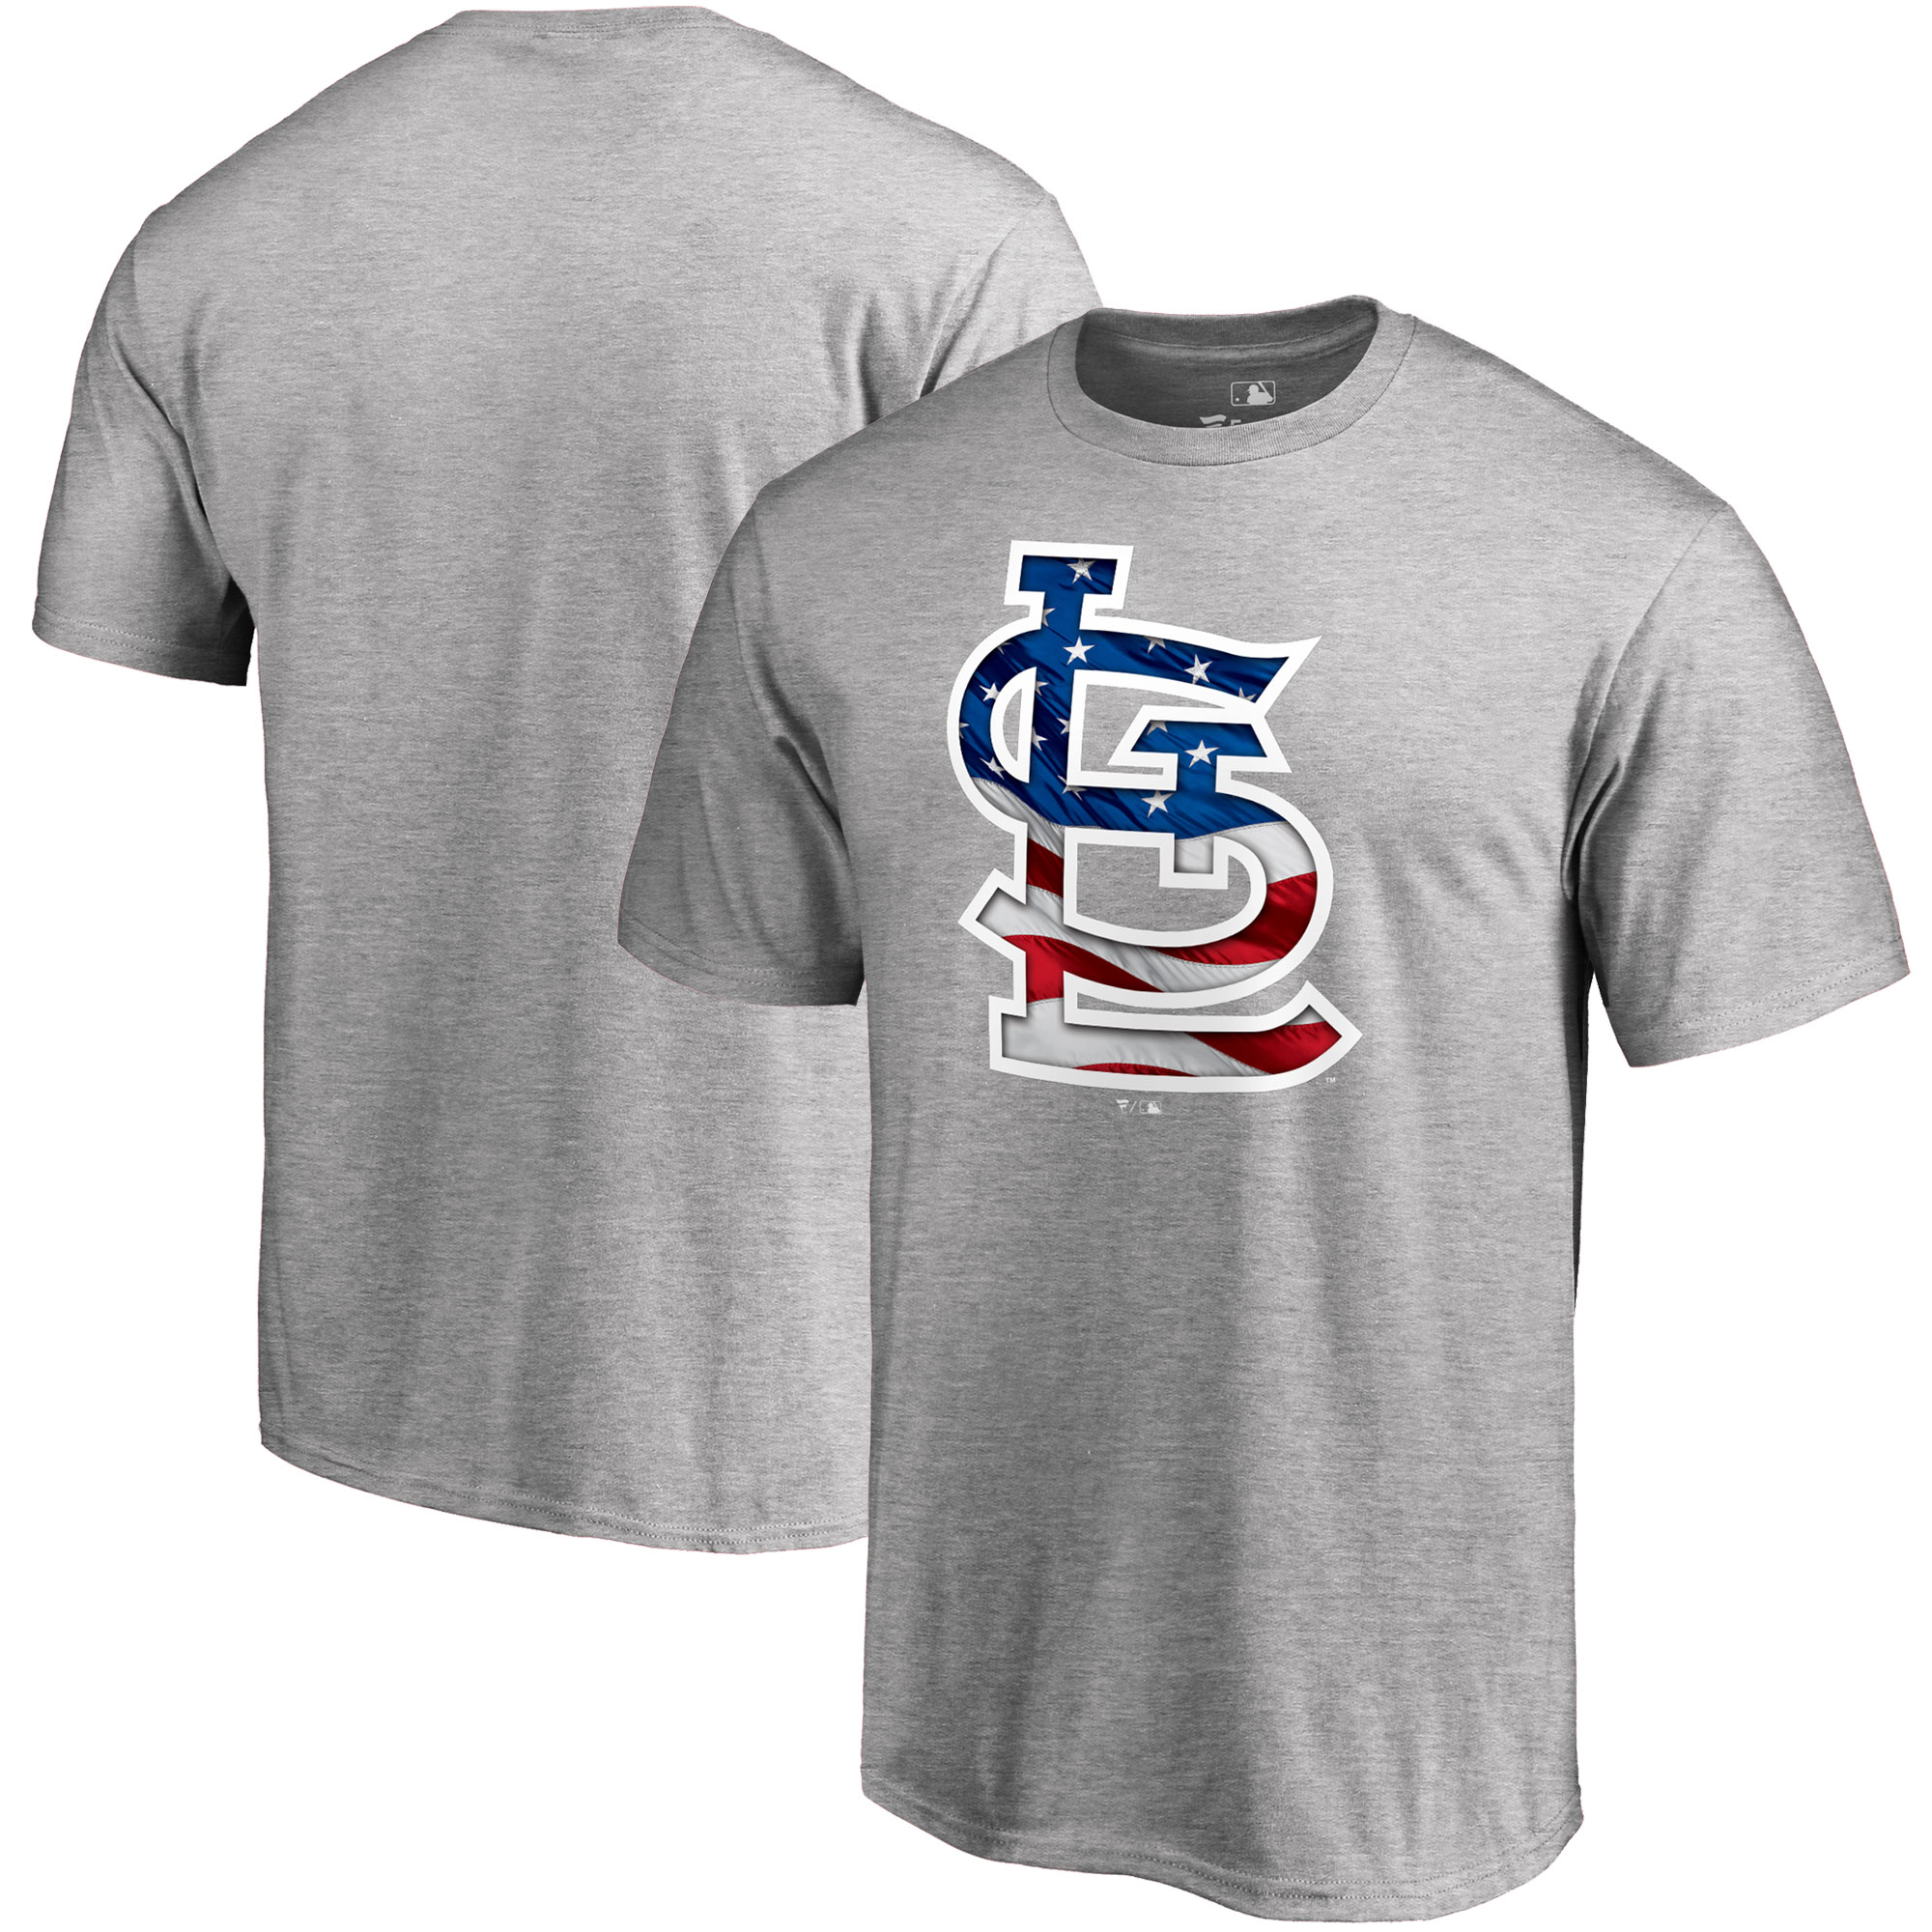 St. Louis Cardinals Fanatics Branded 2018 Stars & Stripes Banner Wave Logo T-Shirt - Heather Gray